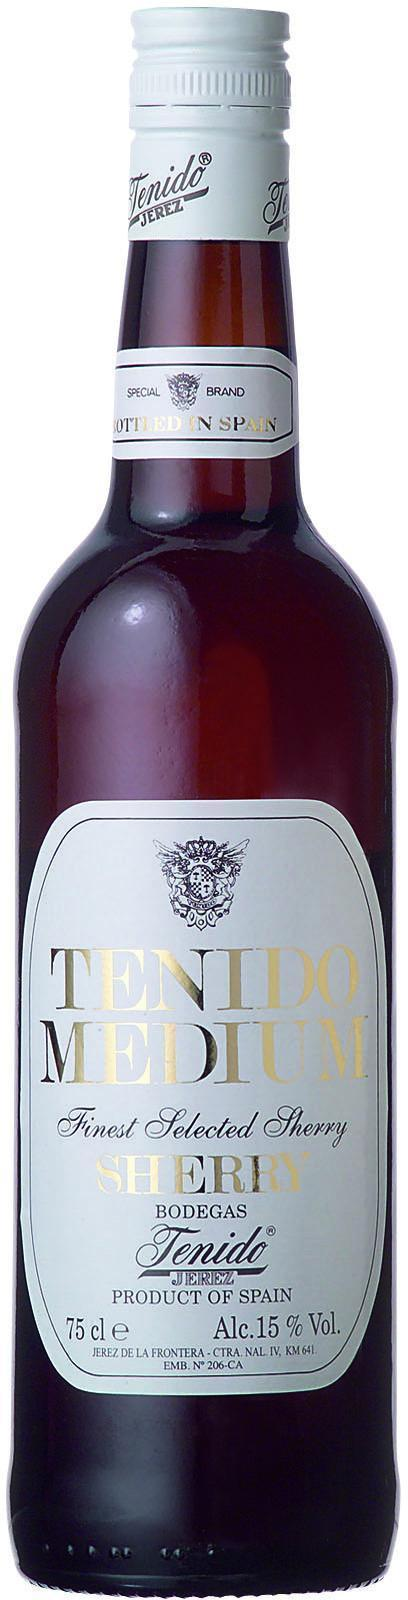 Tenido, Sherry Medium